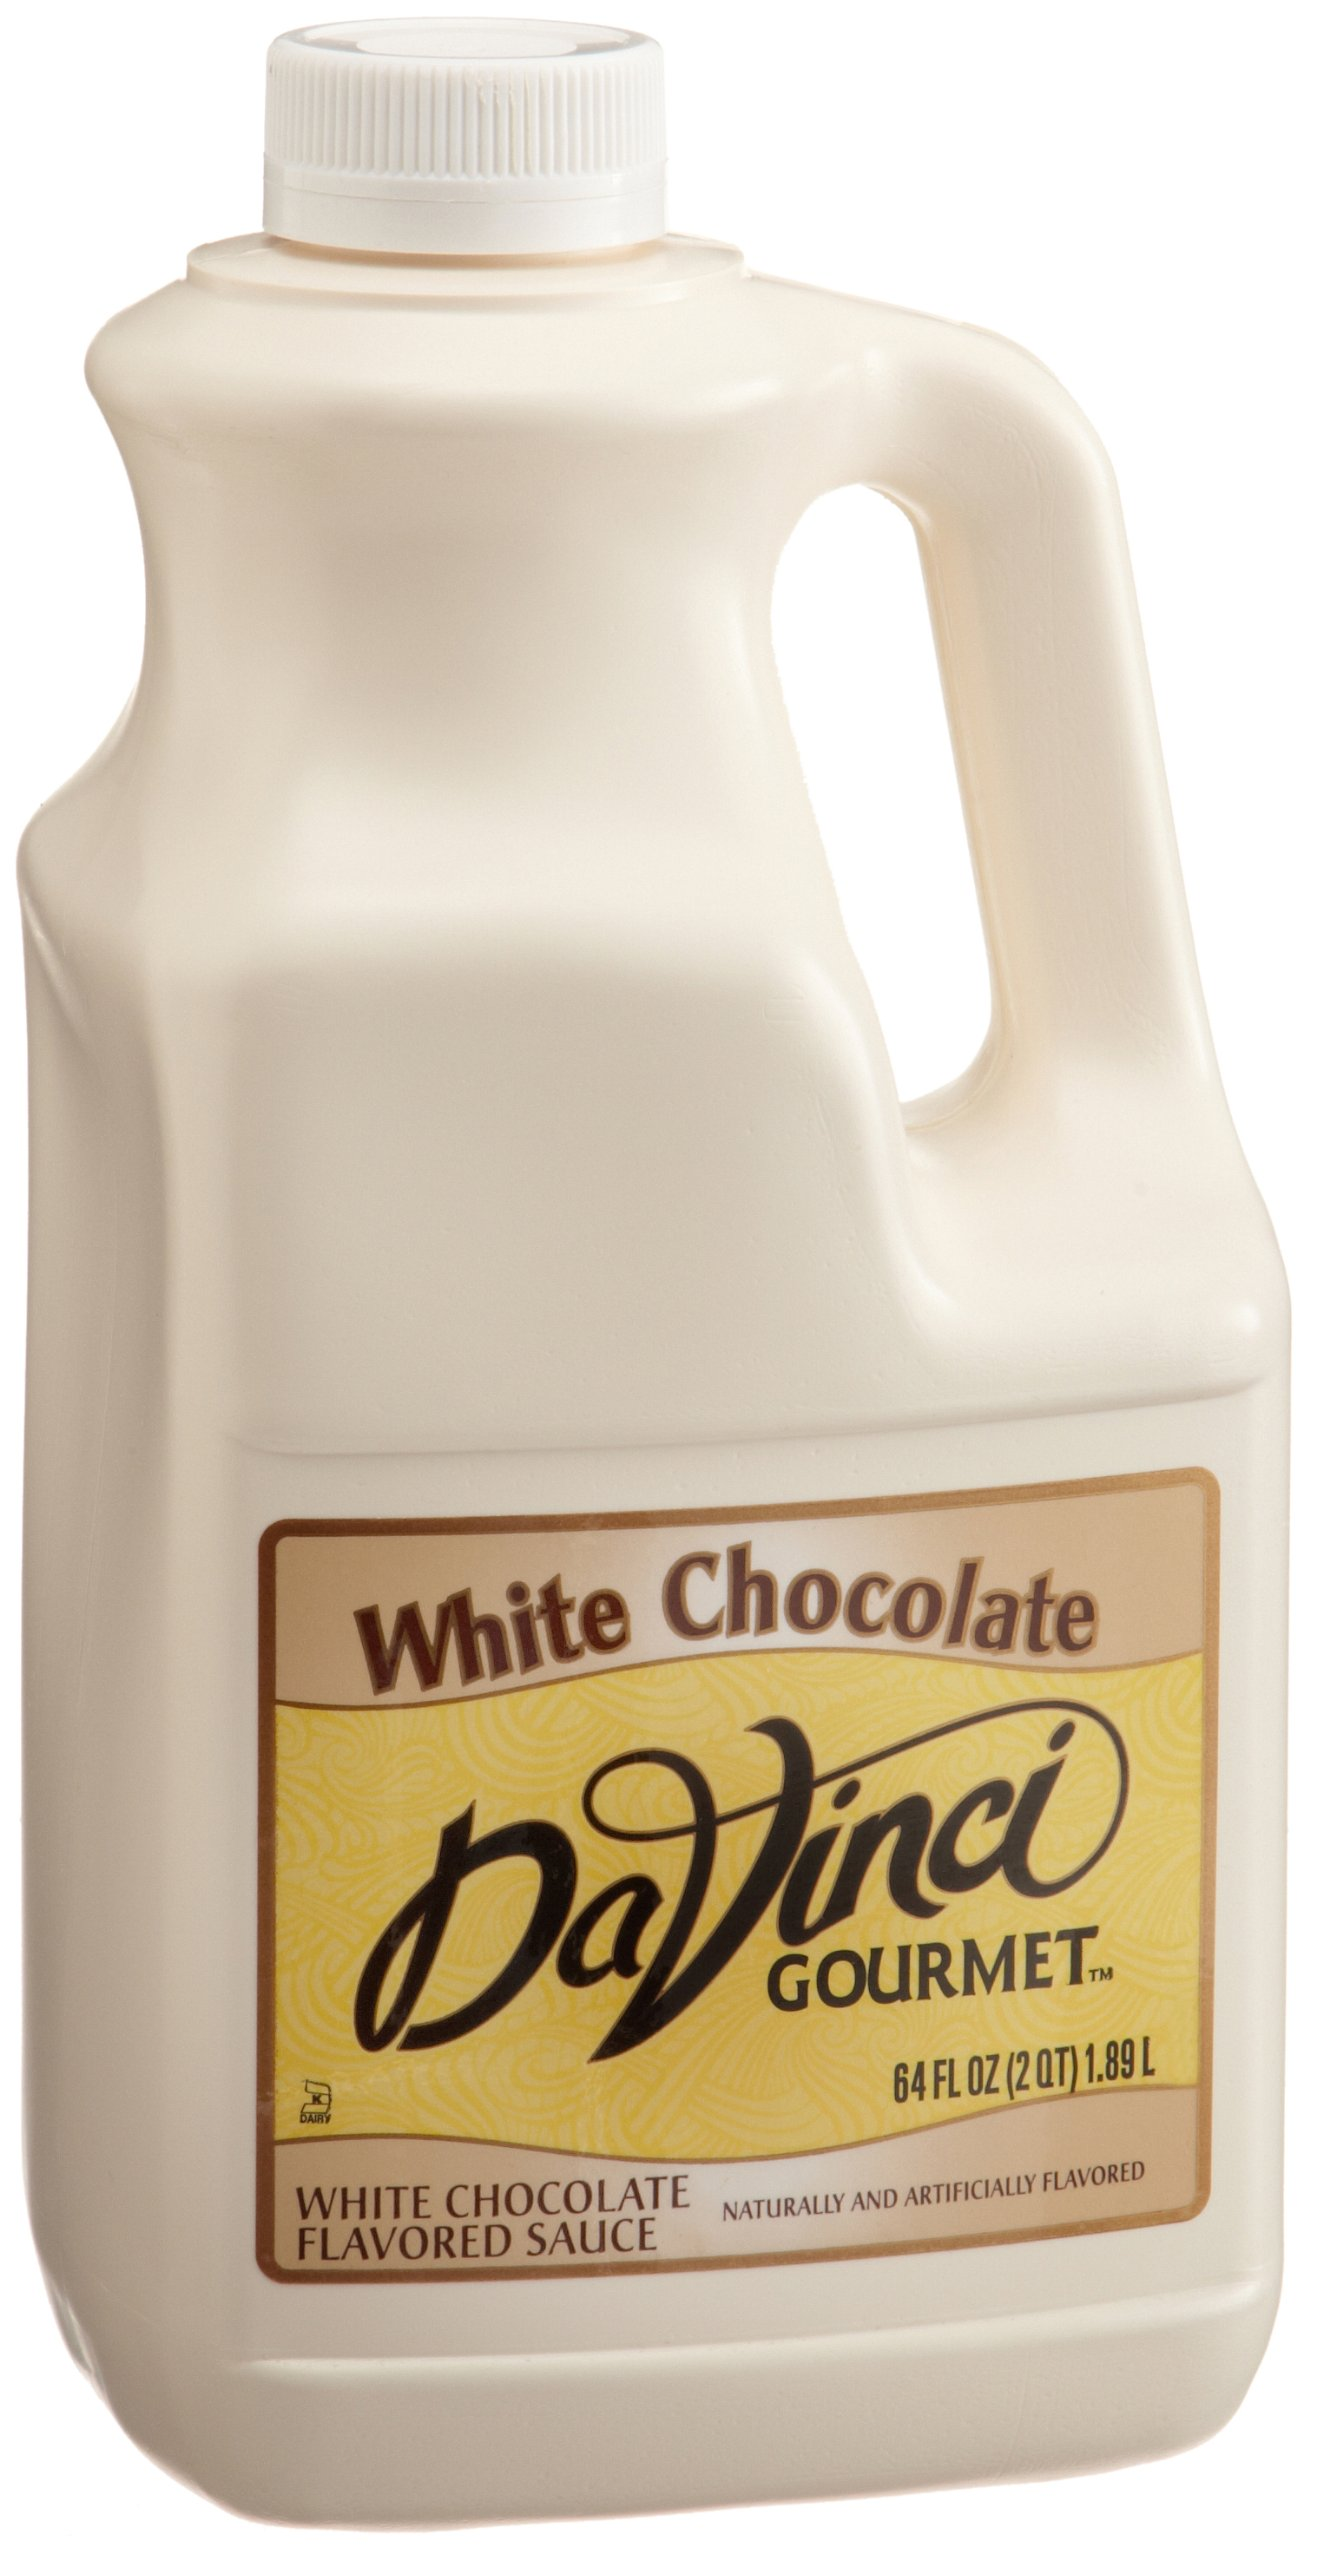 DaVinci Gourmet Sauce, White Chocolate, 64-Ounce Jugs (Pack of 6) by DaVinci (Image #1)